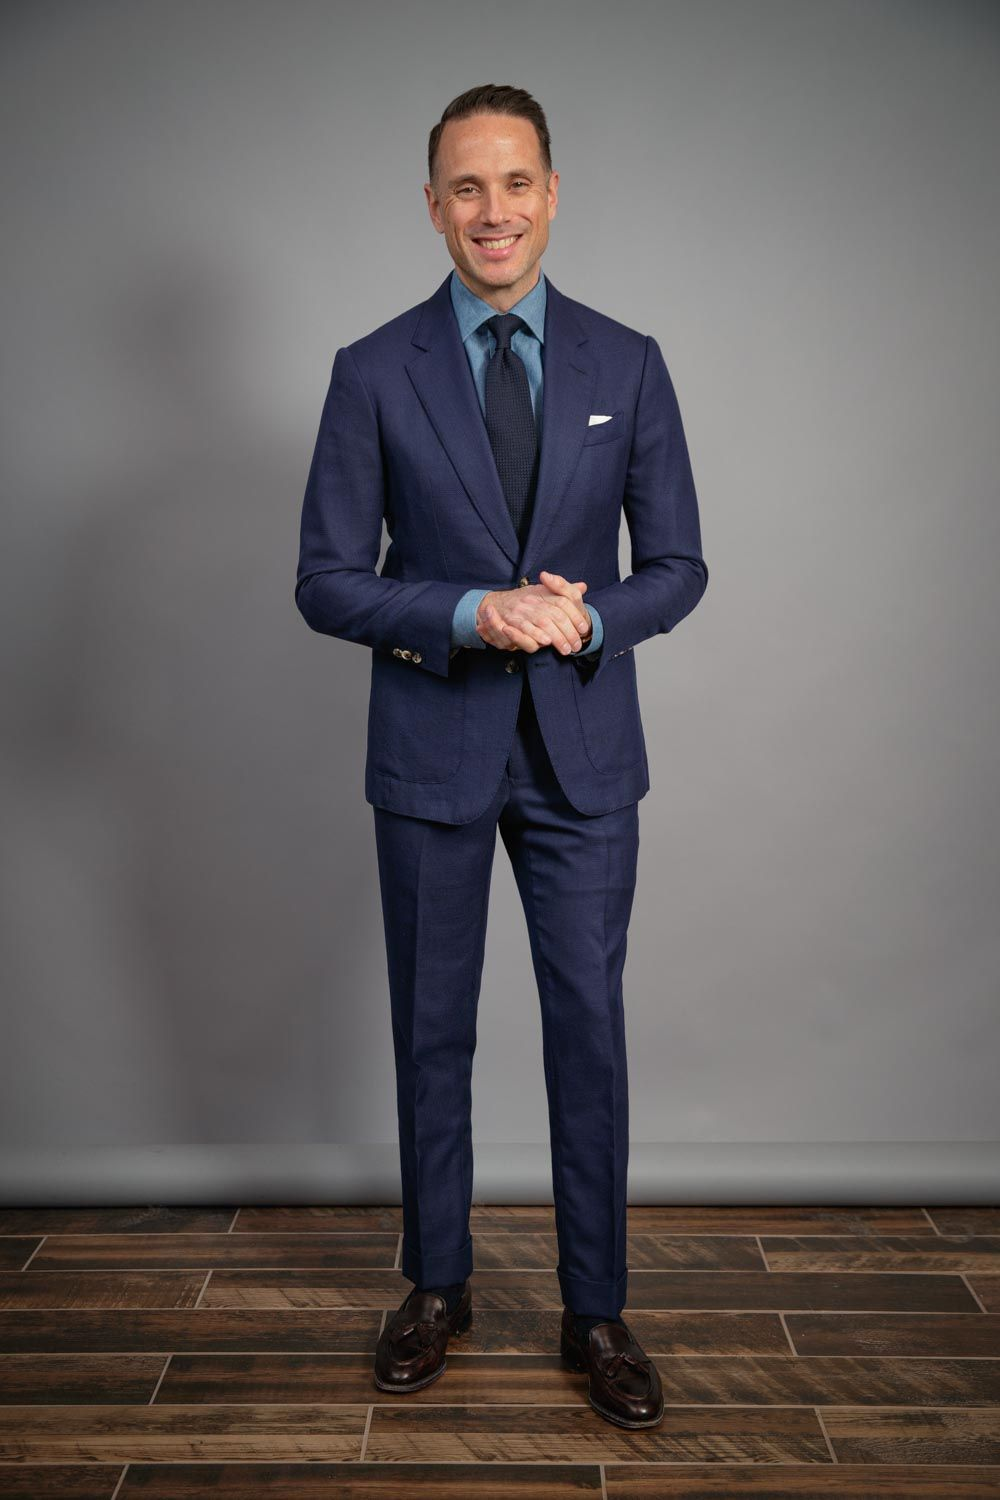 mens-capsule-wardrobe-navy-hopsack-suit-denim-shirt-tassel-loafers-grenadine-tie